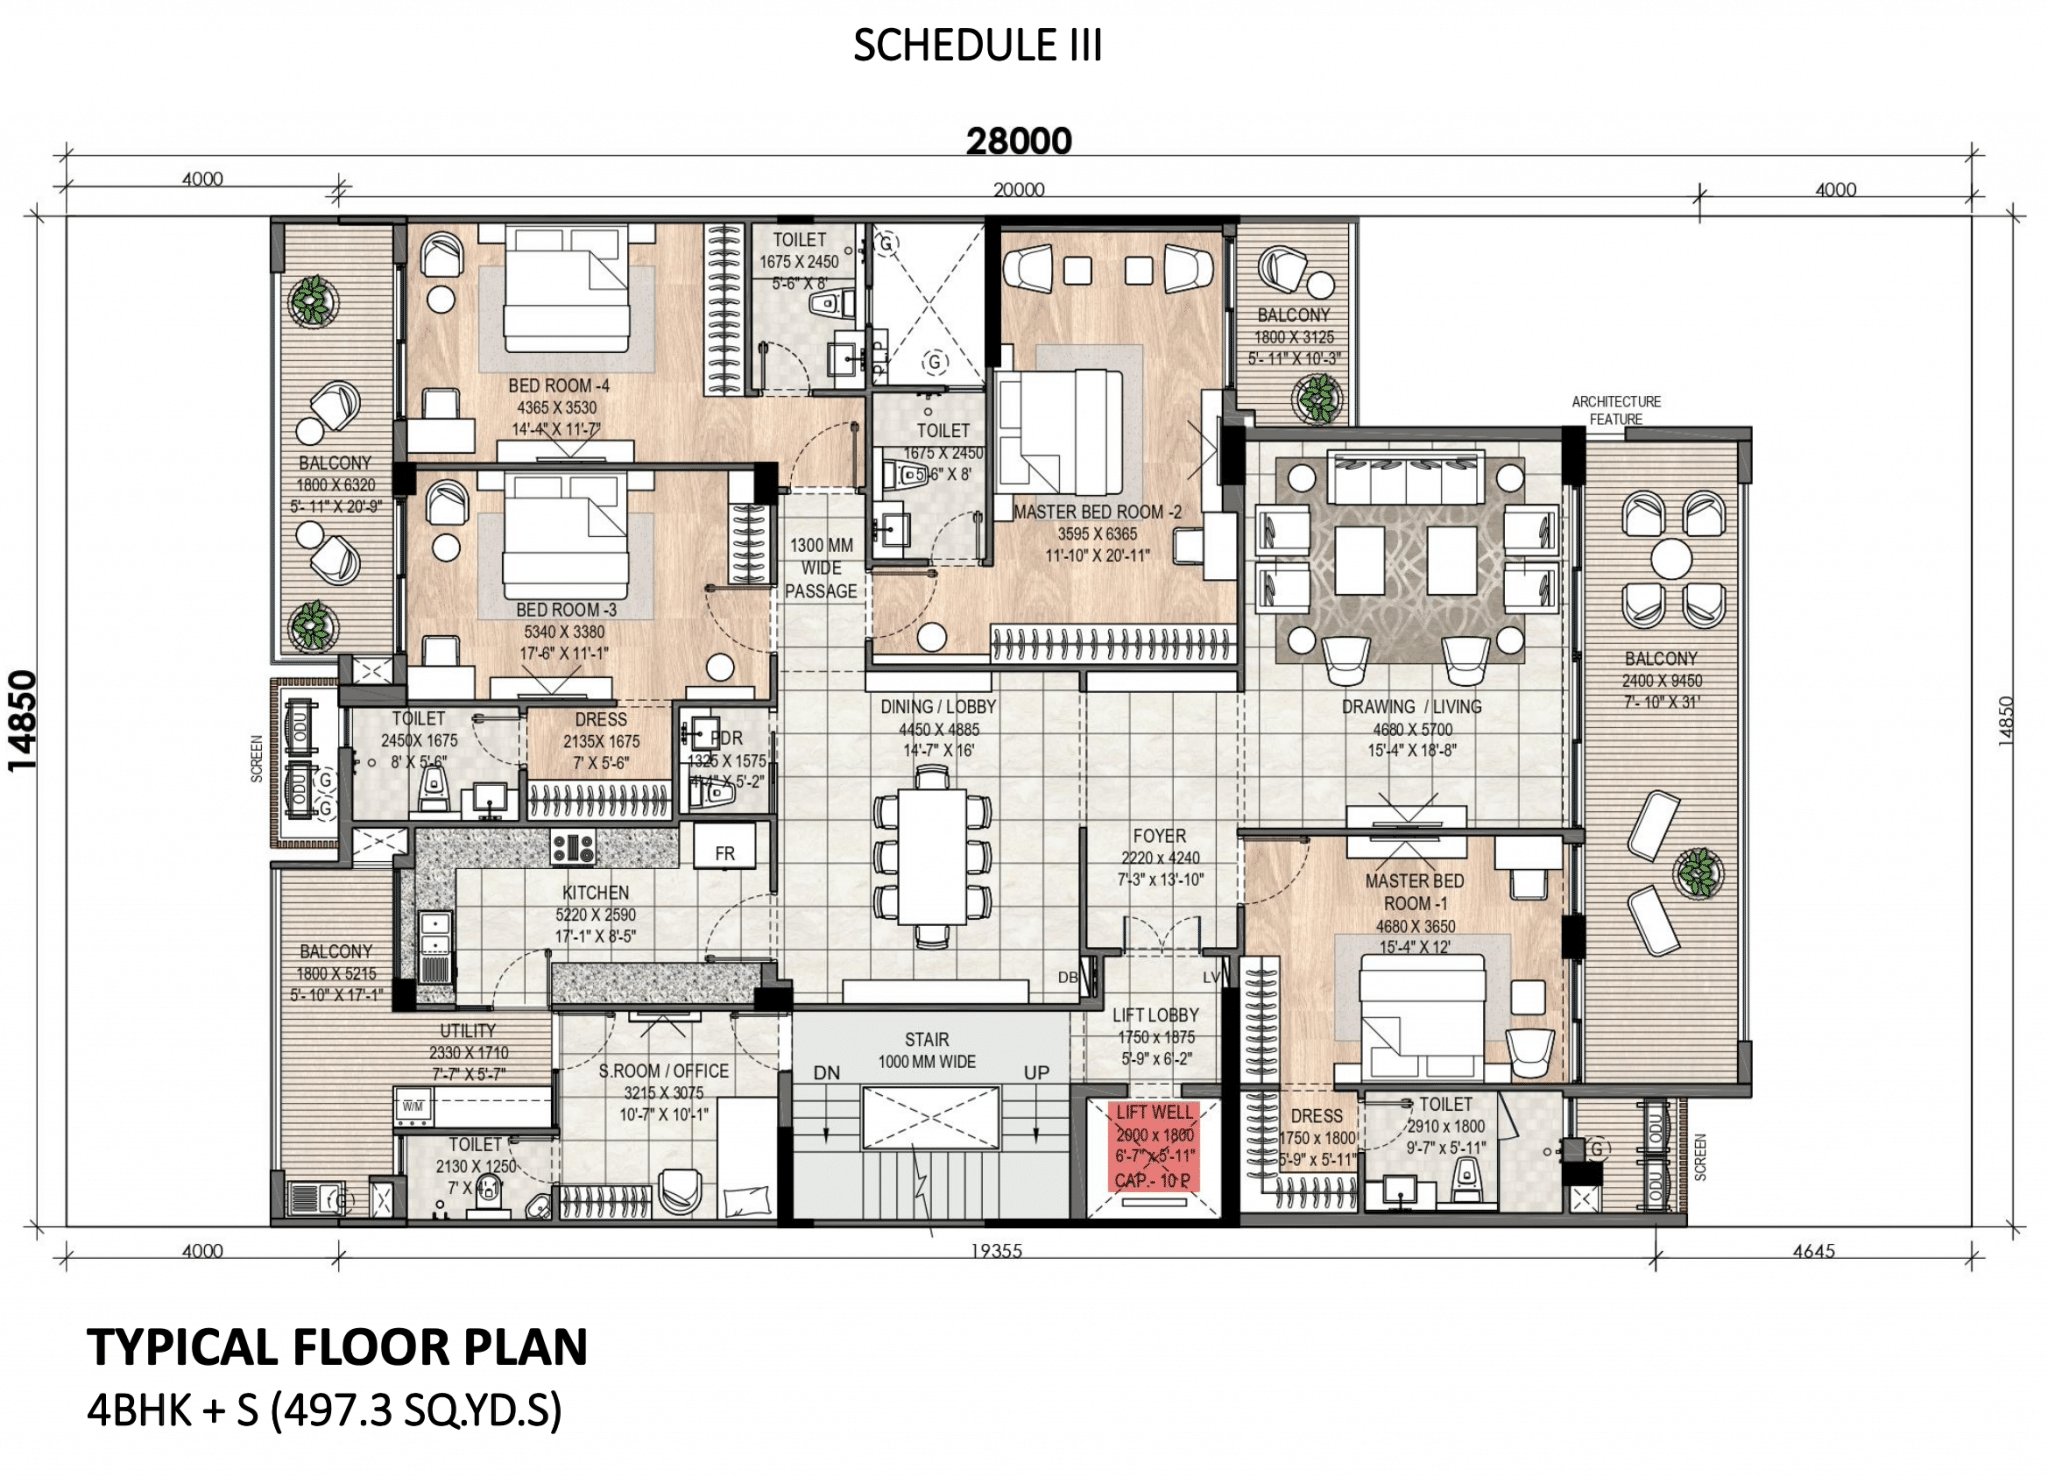 DLF Phase 3, 4BHK + S (497.3 SQ.YD.S) Floor Plan